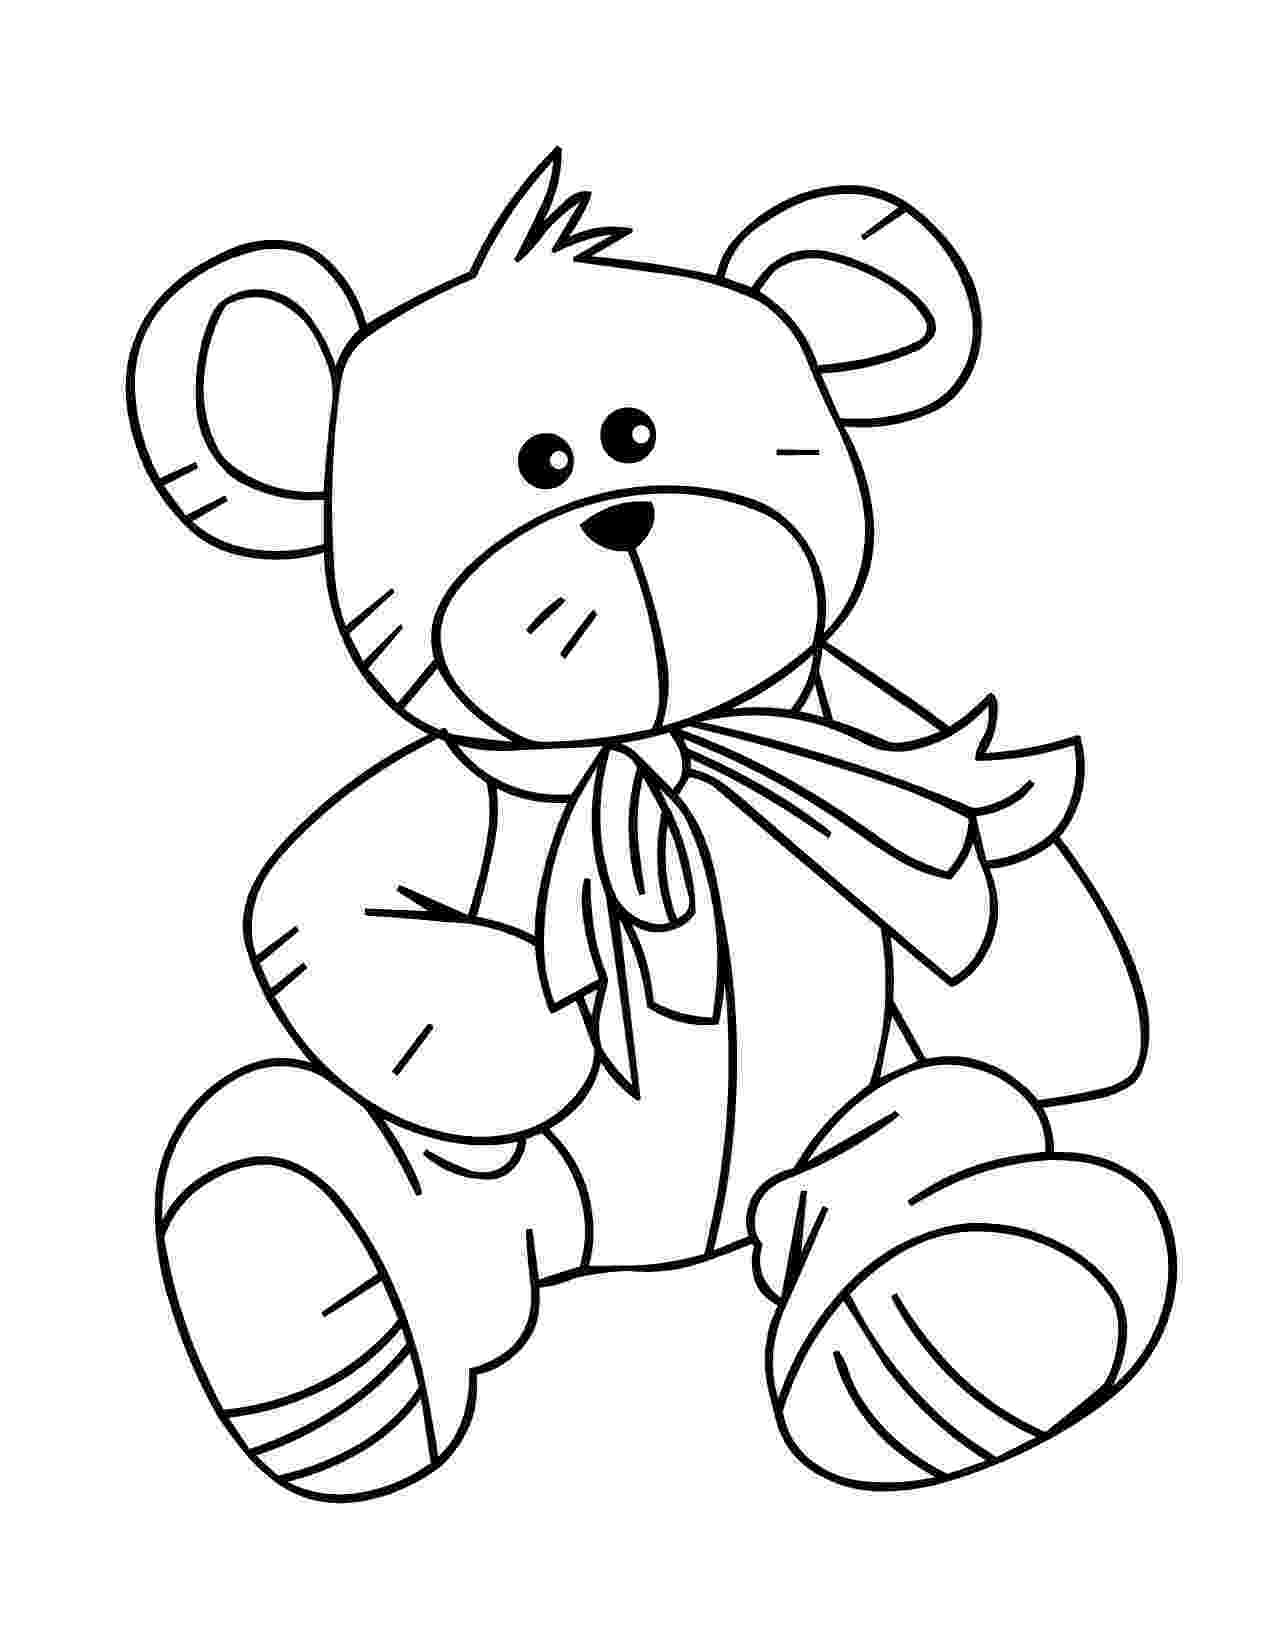 teddy to colour free printable teddy bear coloring pages technosamrat to teddy colour